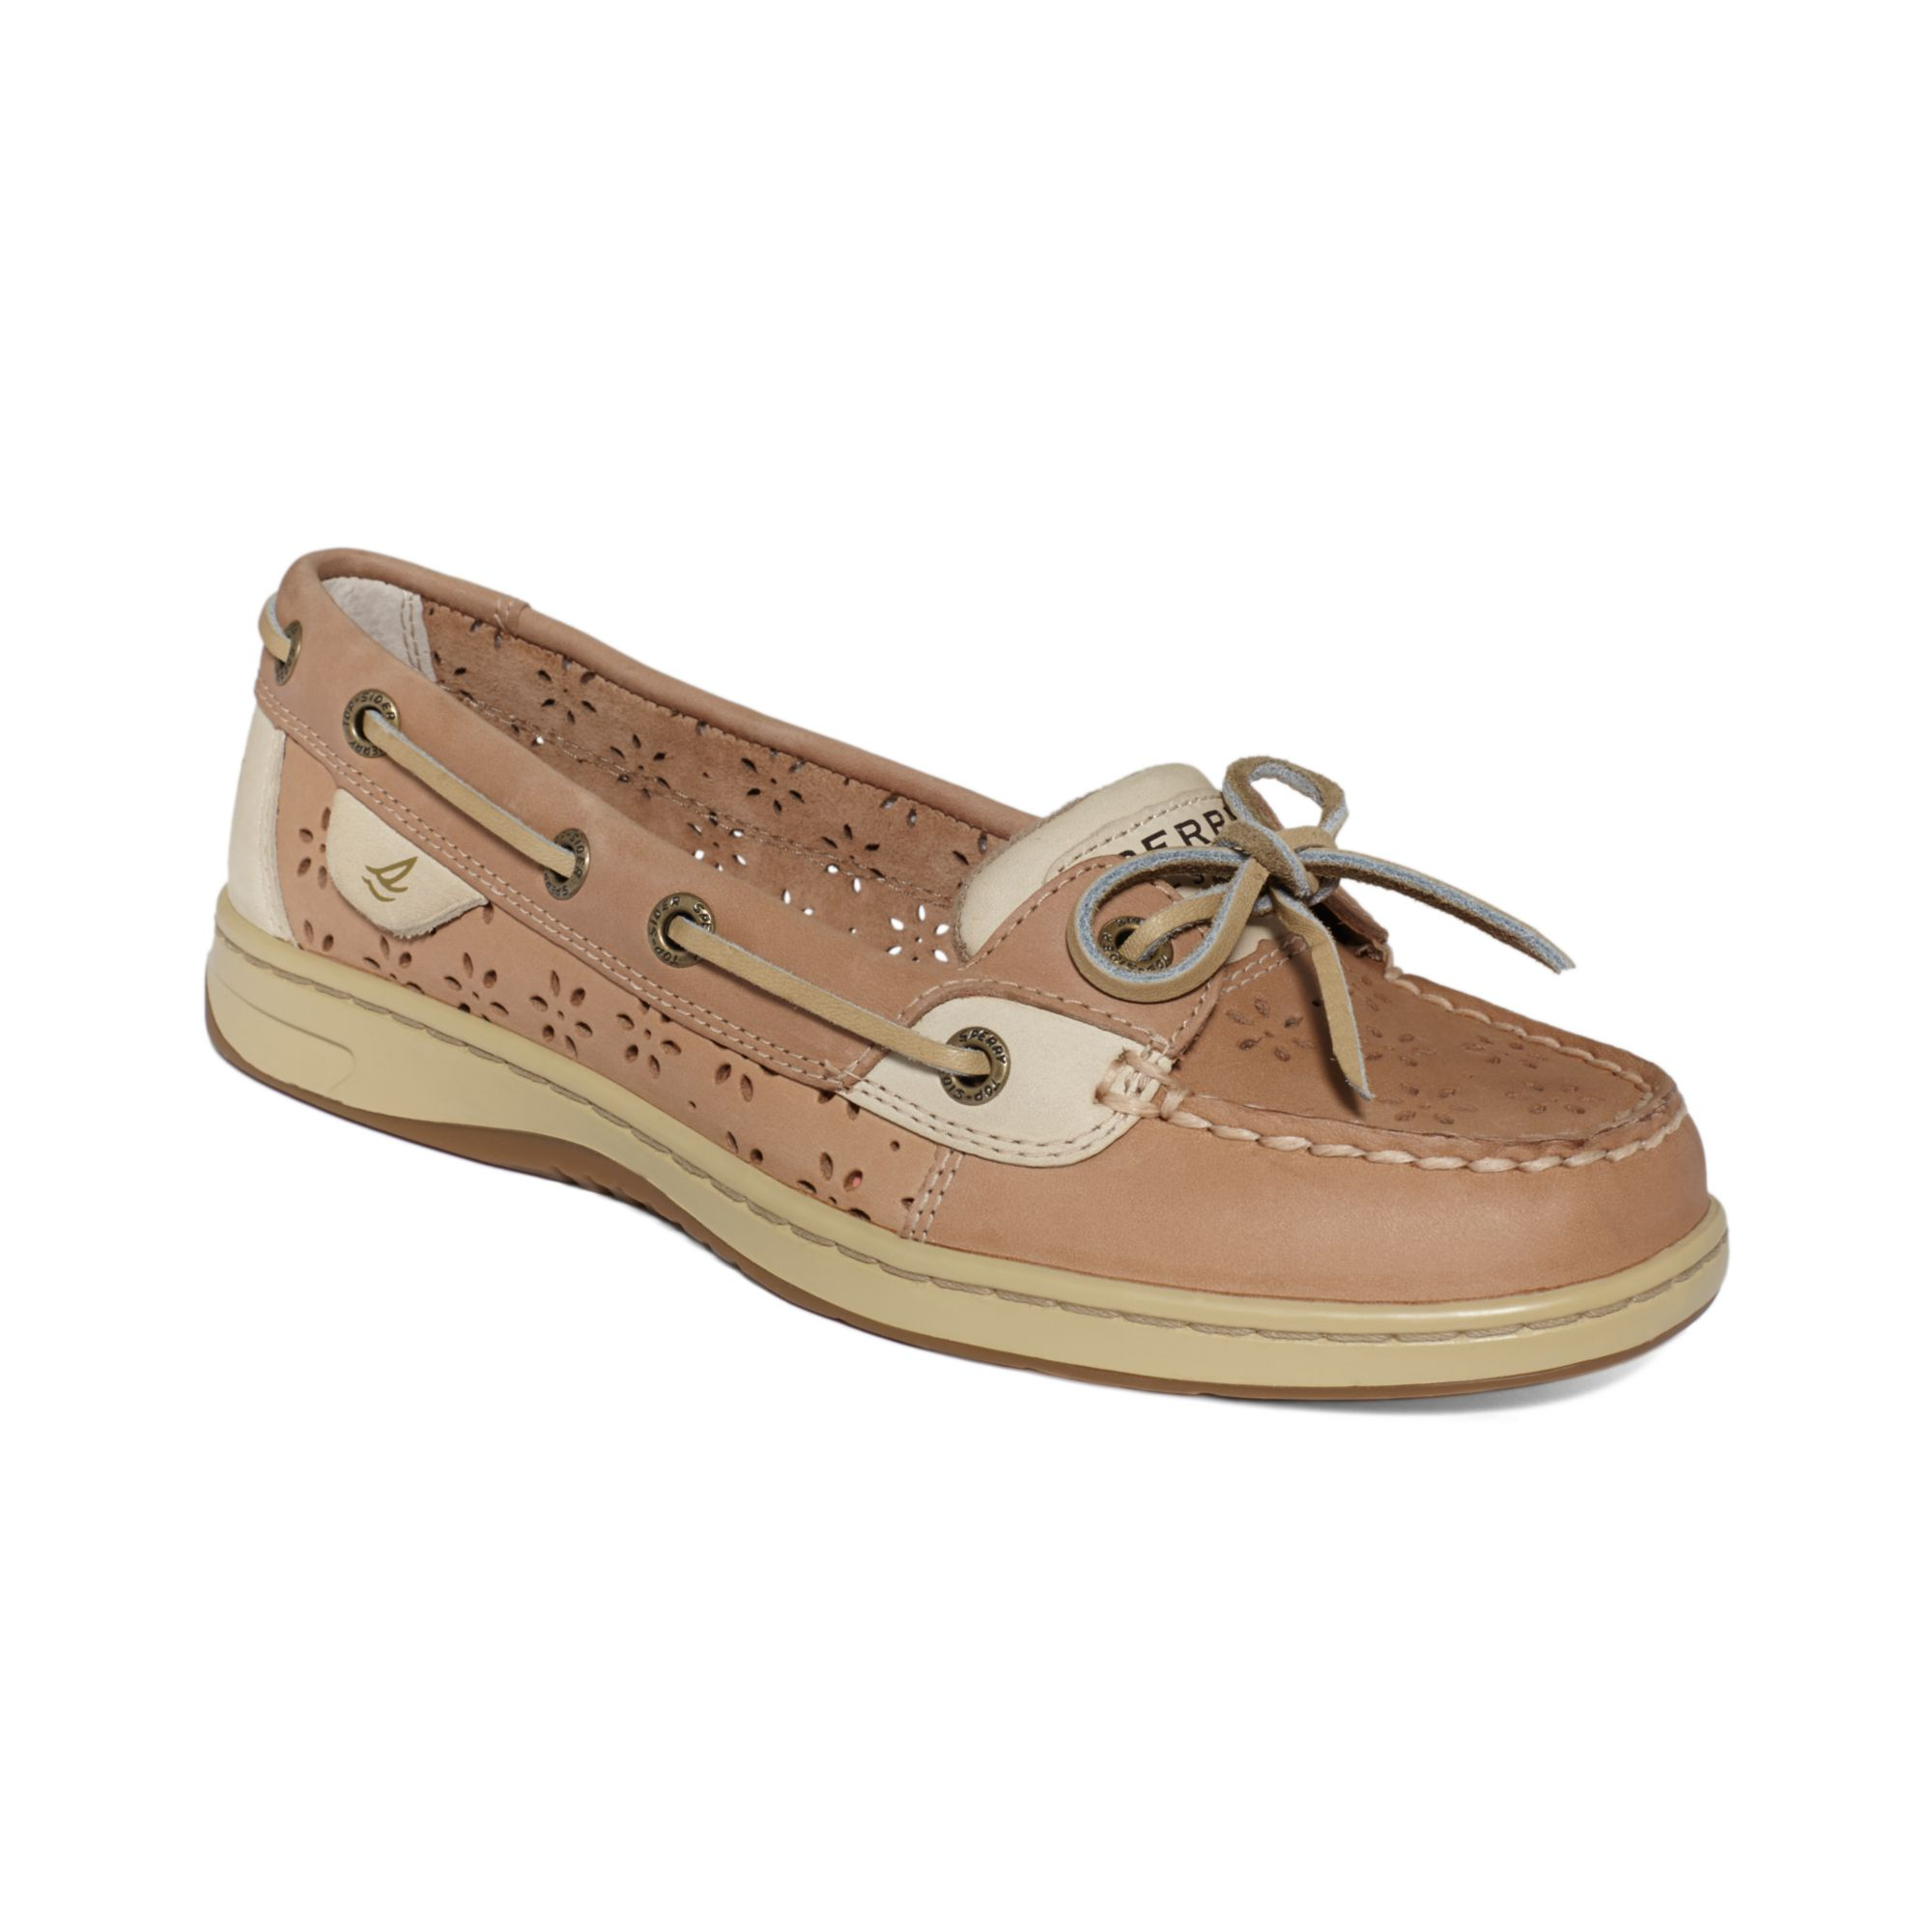 Sperry top sider womens angel fish boat shoes in beige for Best boat shoes for fishing